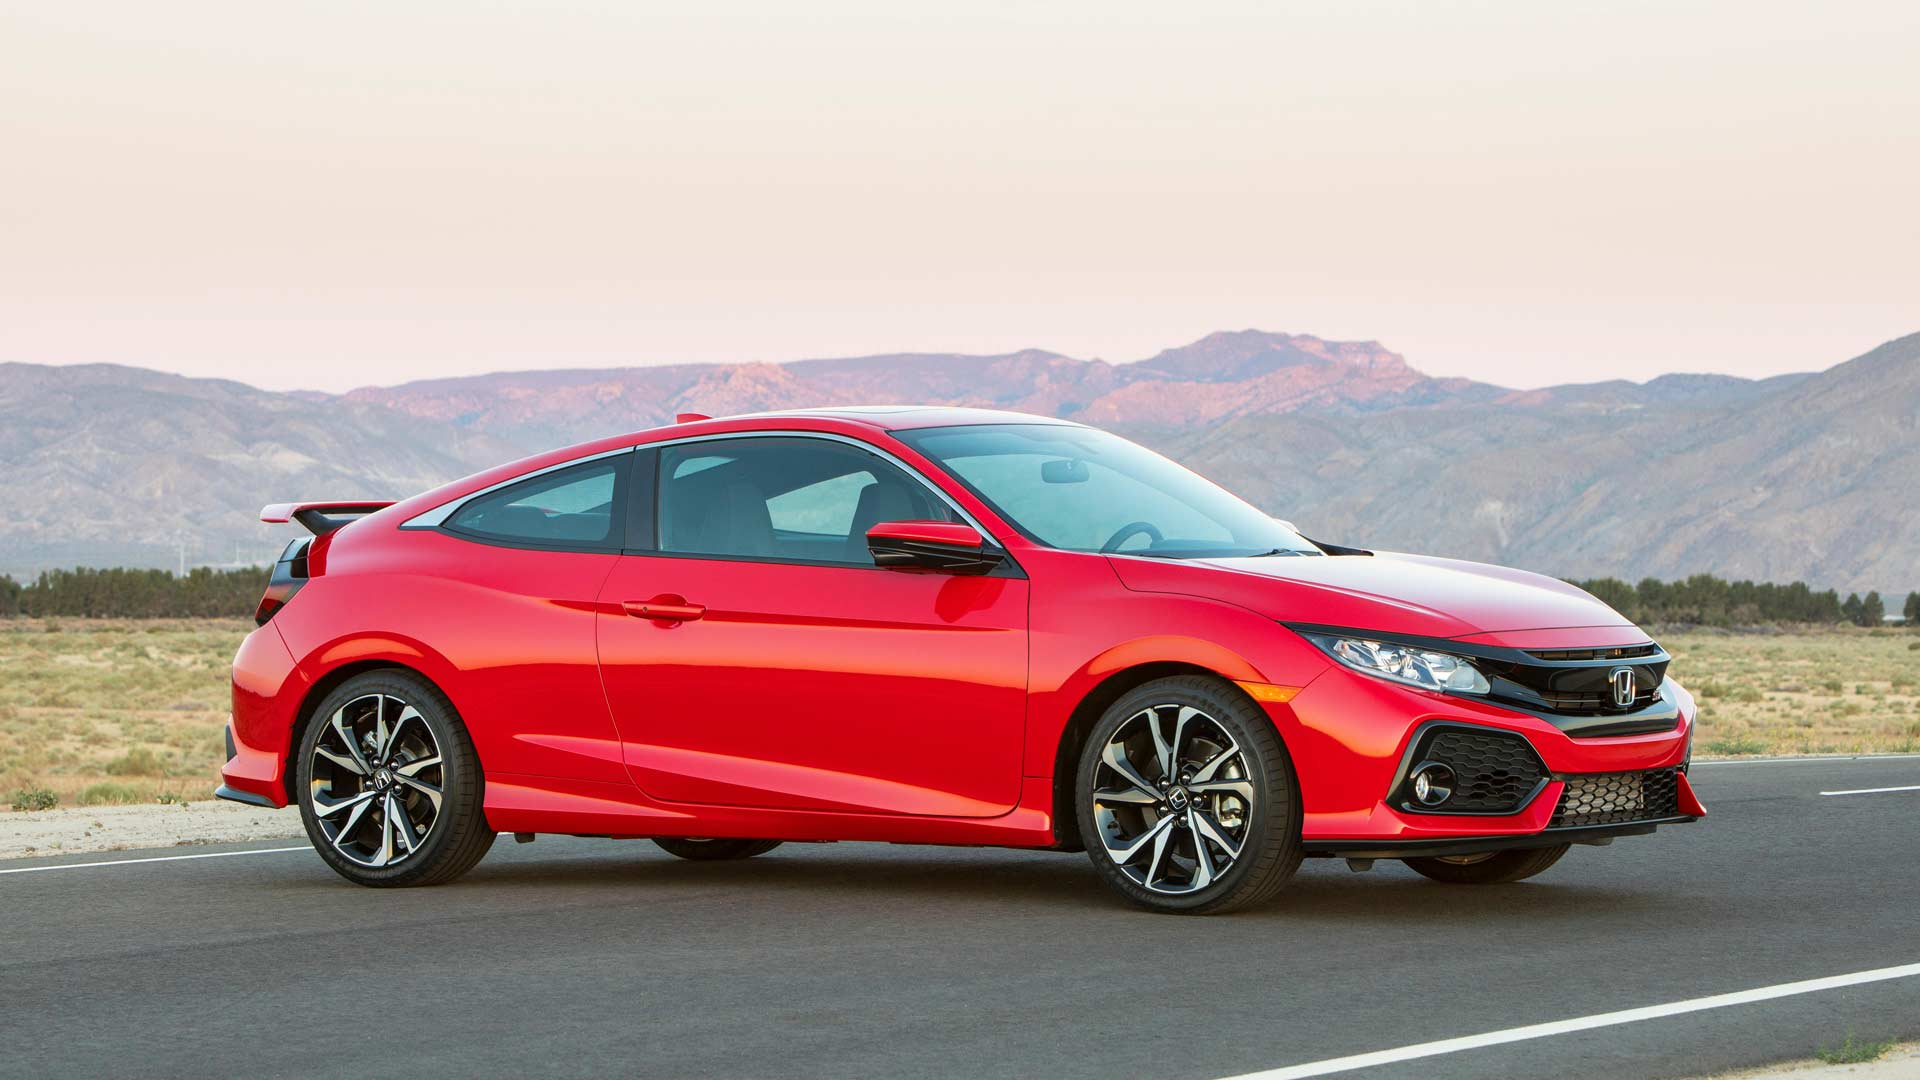 2019-Honda-Civic-Si-Coupe_6